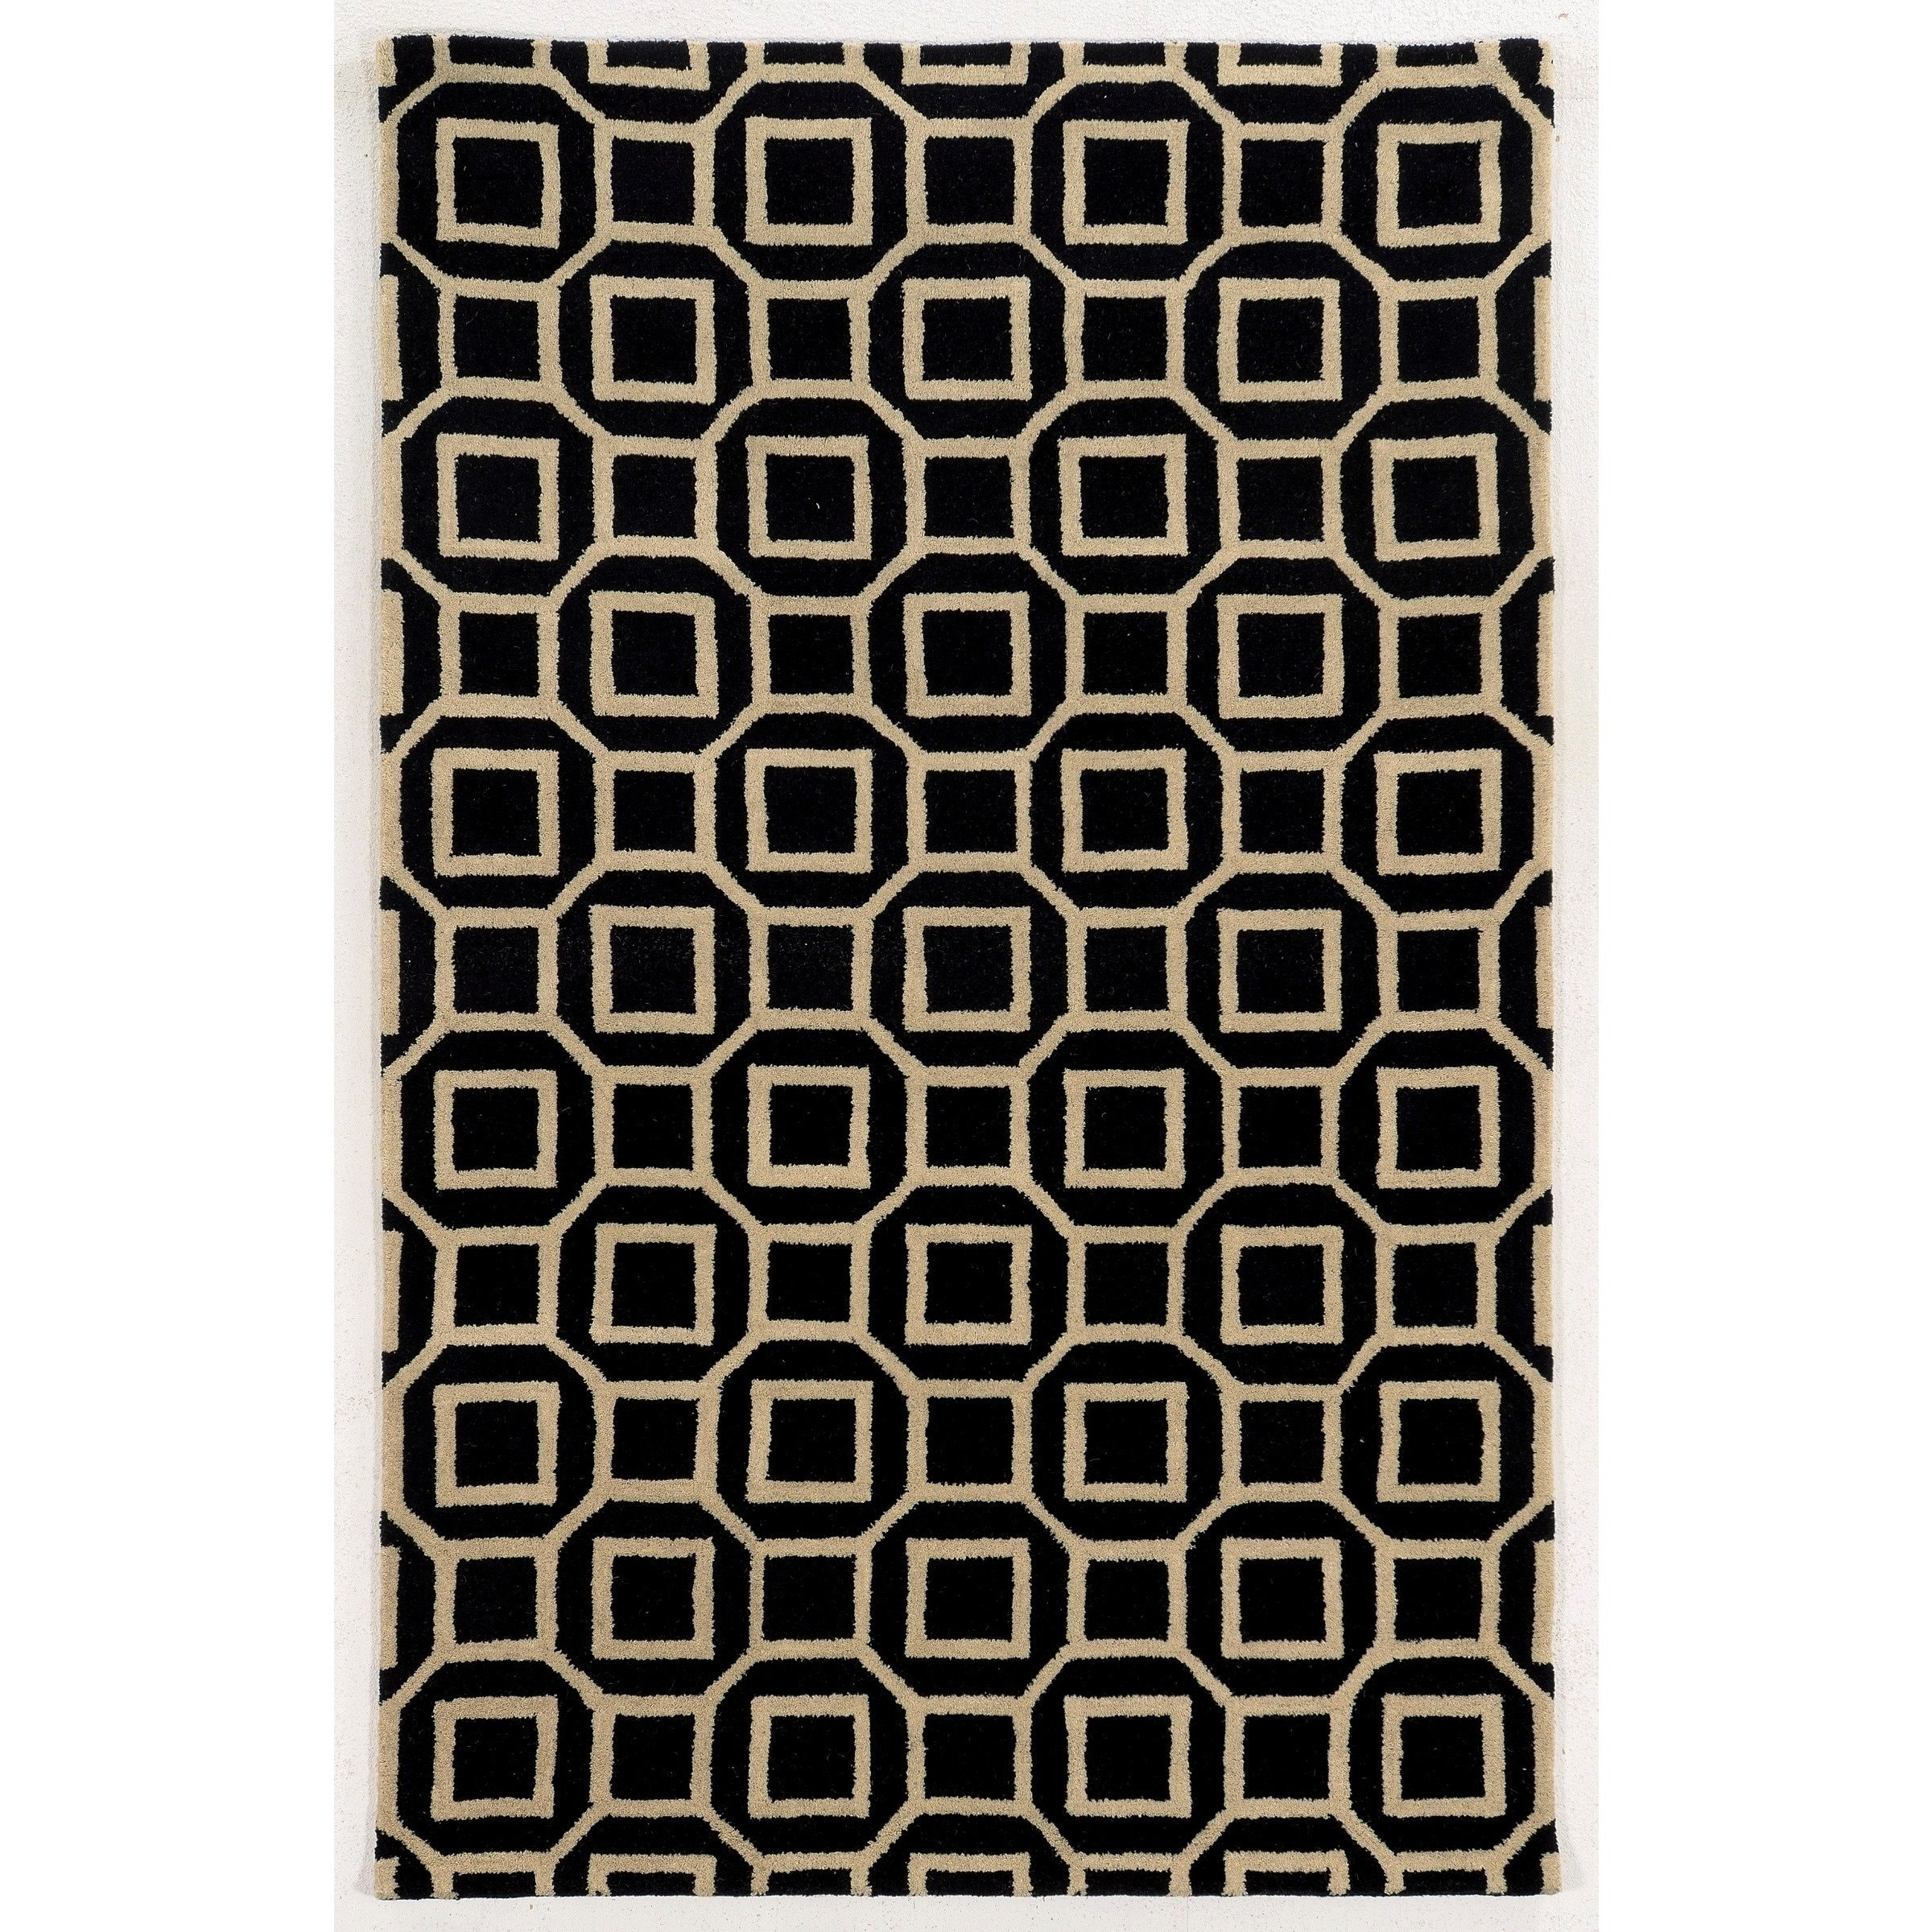 Rizzy Home  Ivory/ Black/ Gold/ Rust Julian Pointe Collection 100-percent Wool Hand-Hand-Tufted Accent Rug (8' x 10')